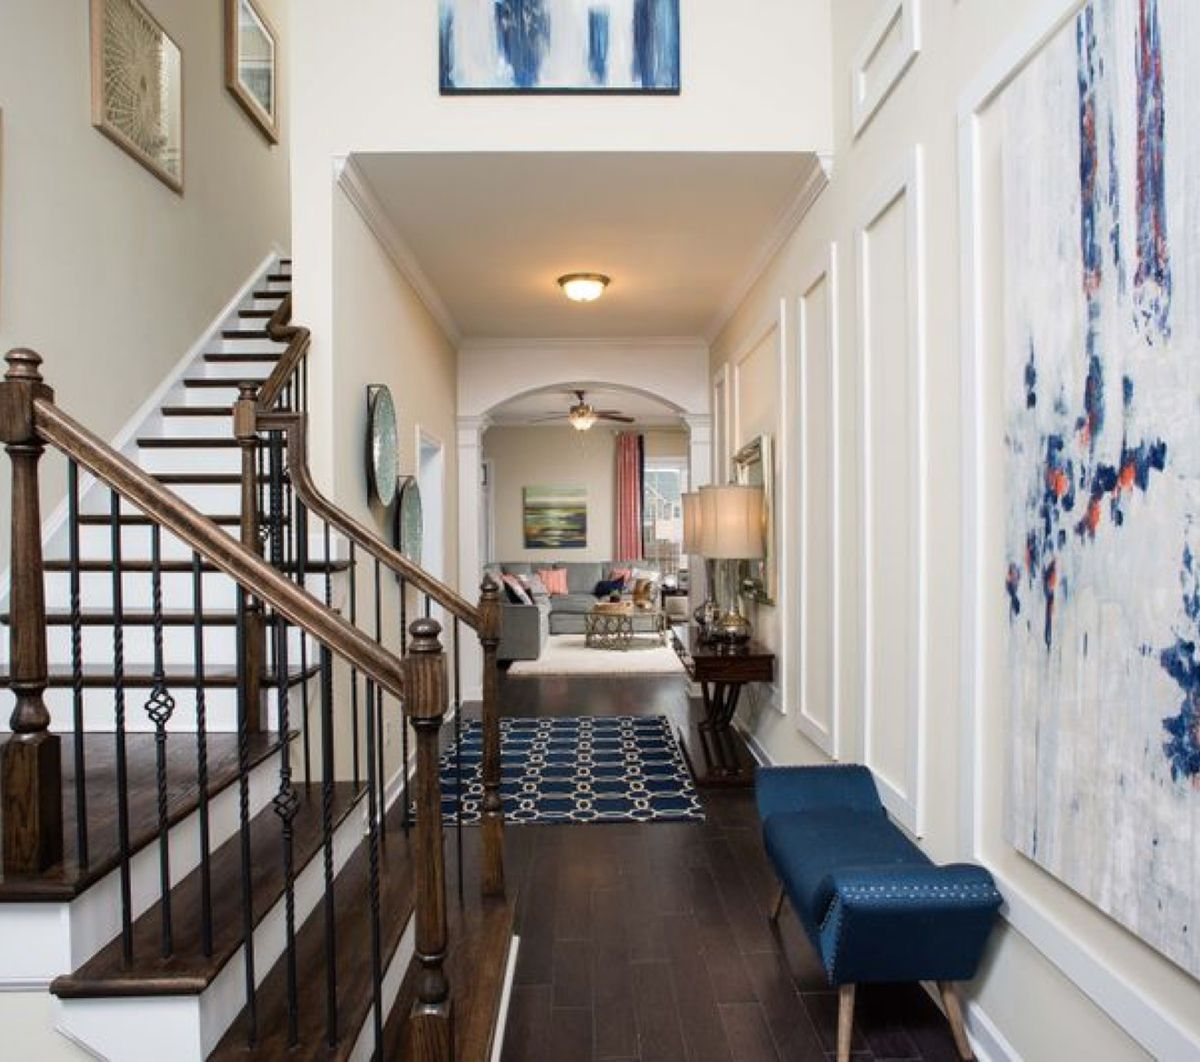 Entryway with staircase and view of living area